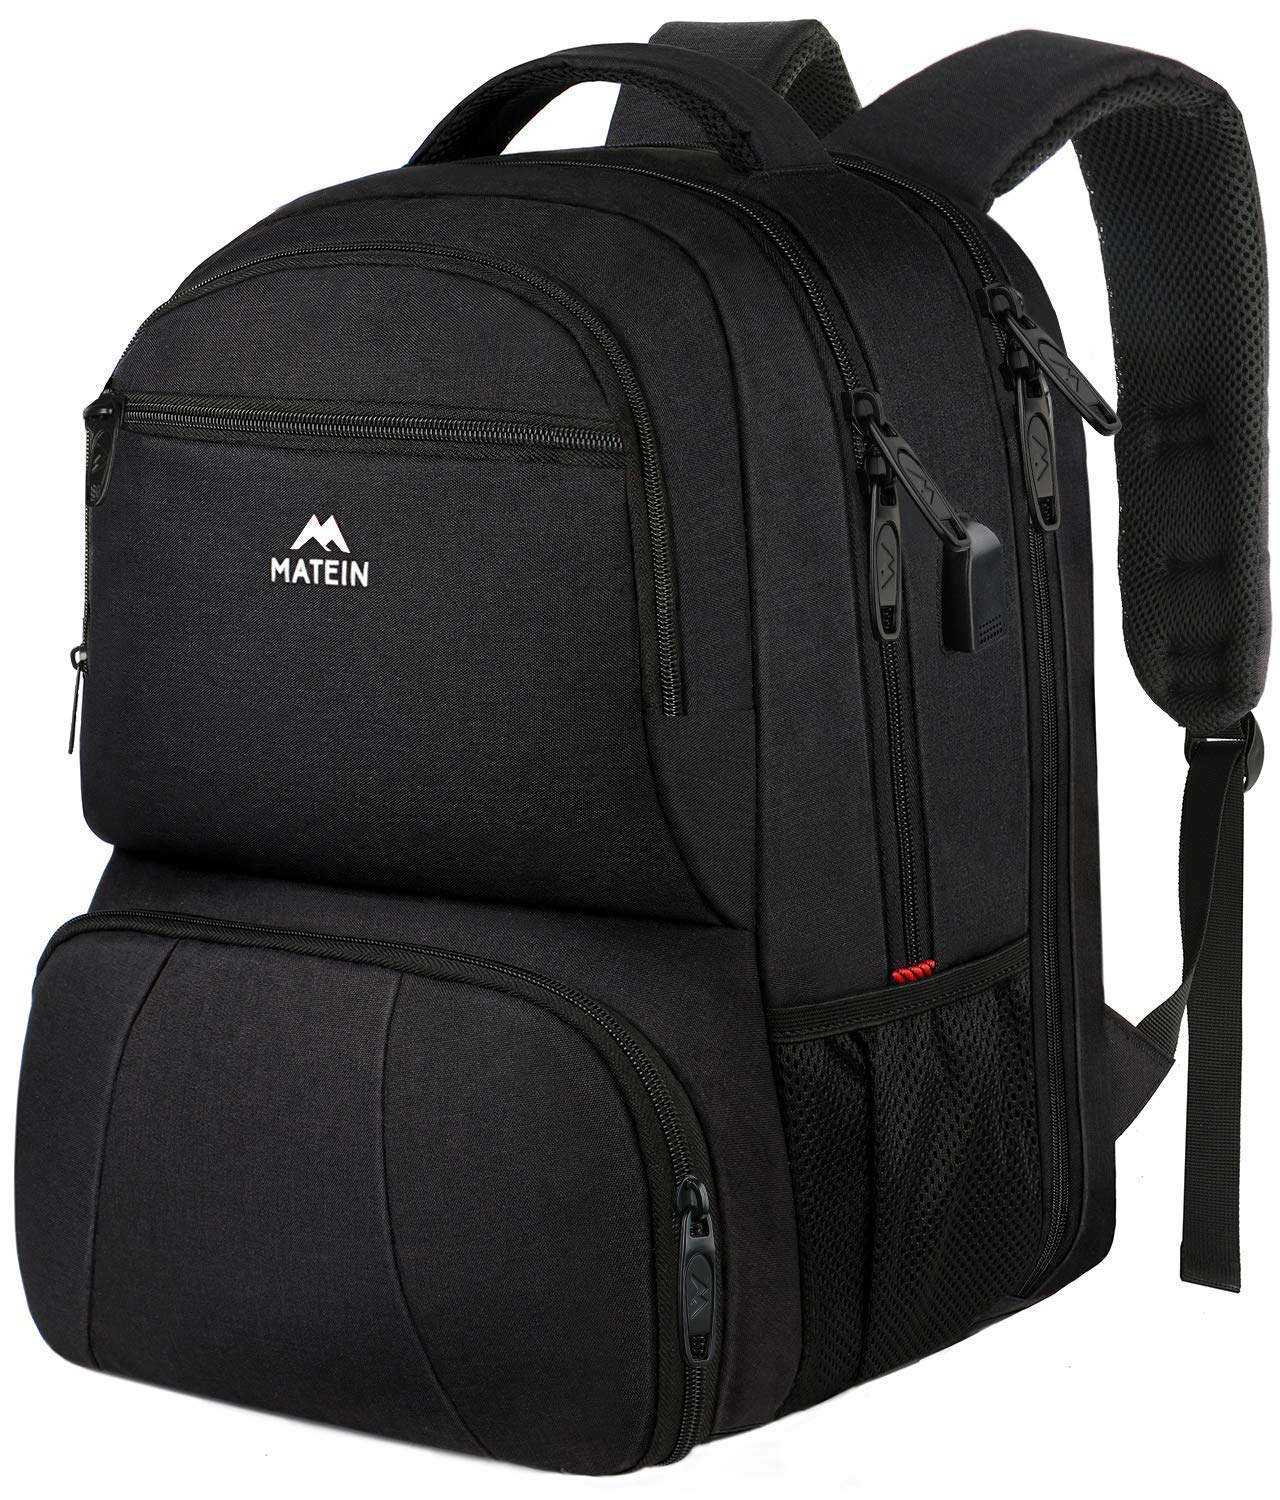 laptop bag with cooler